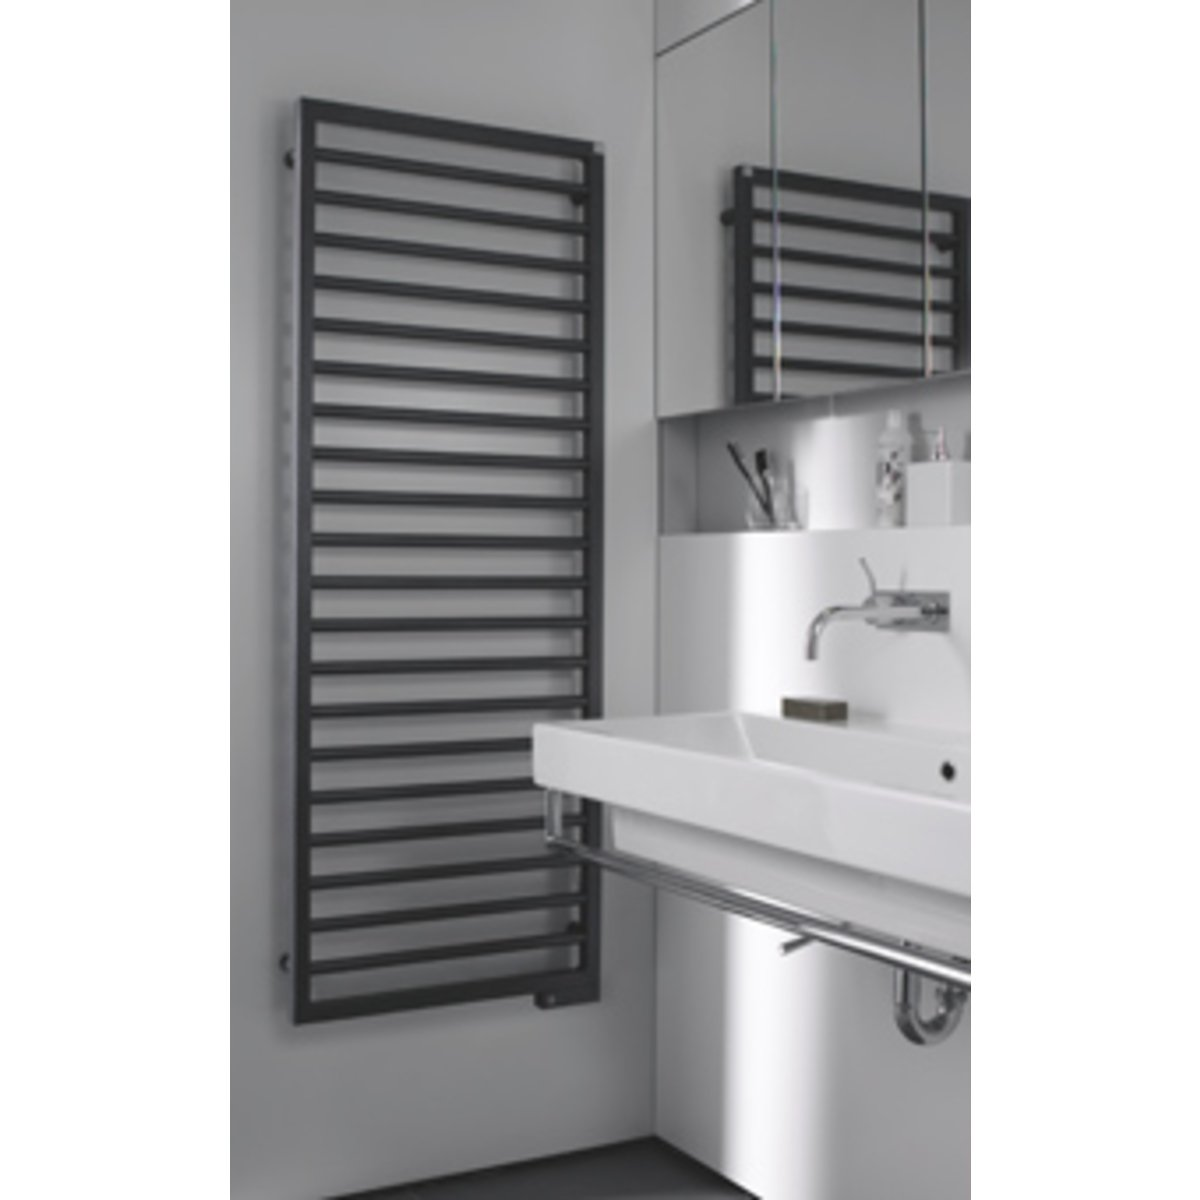 zehnder subway designradiator electrisch verticaal 1639x600mm 750w wit 7611254